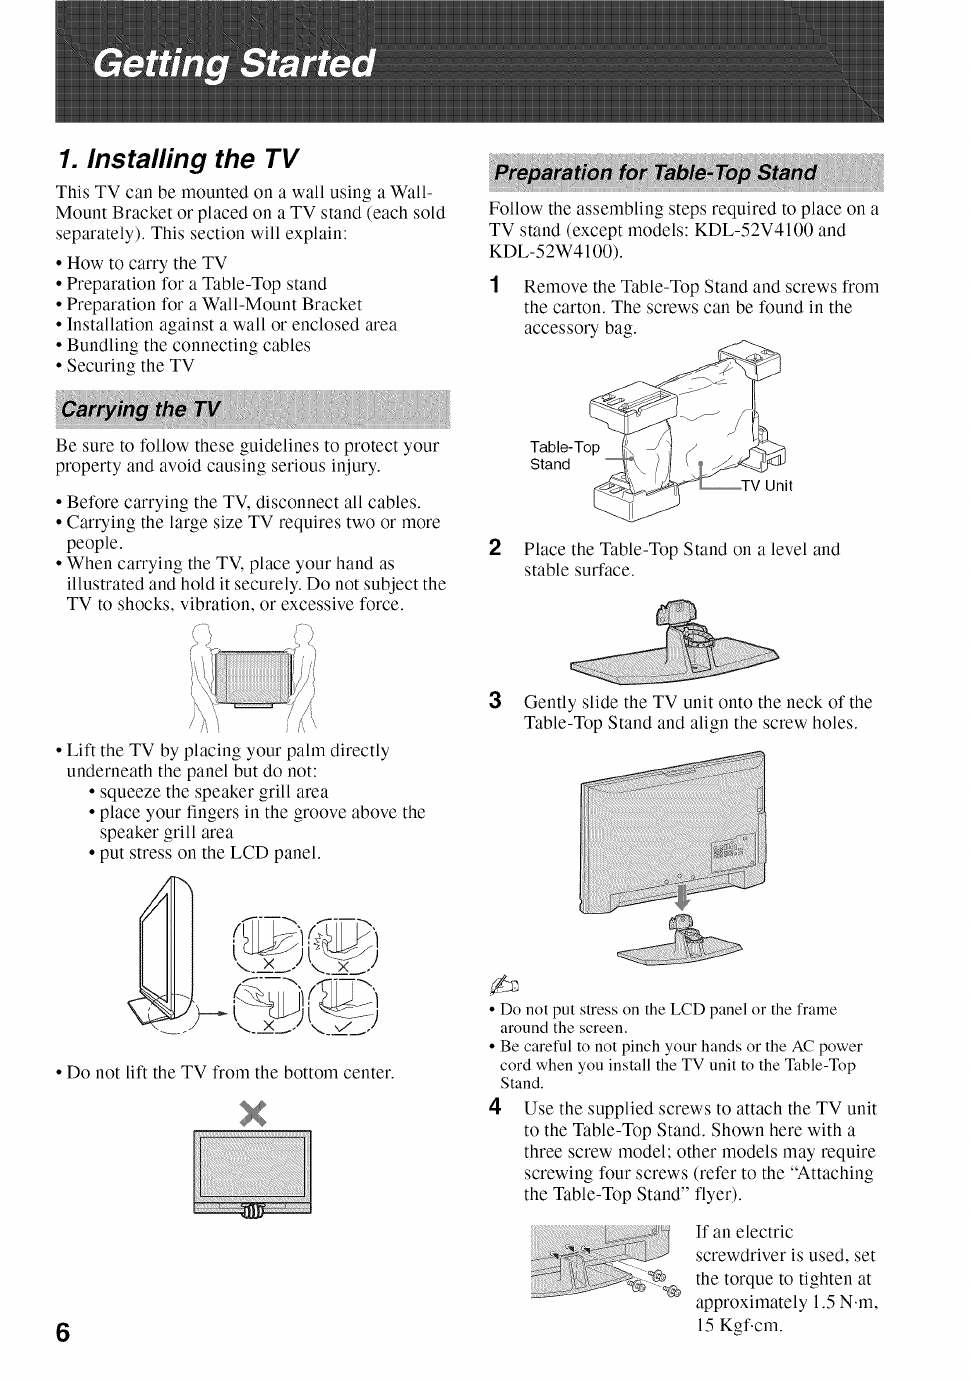 Sony BRAVIA KDL52V4100 User's Manual | Page 6 - Free PDF